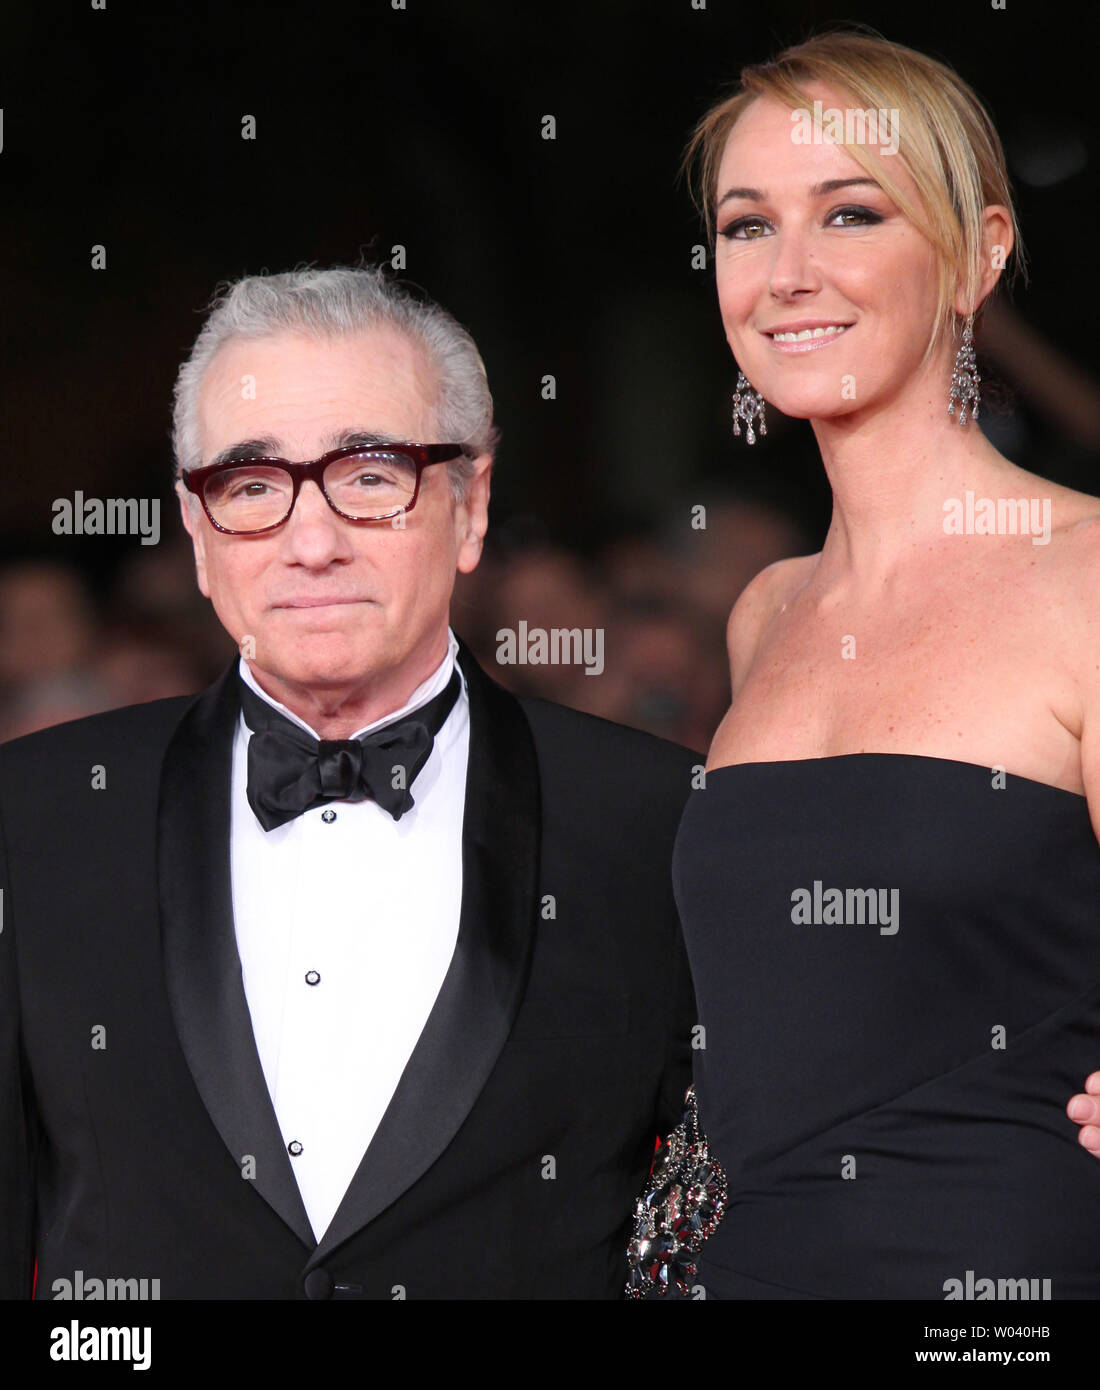 Martin Scorsese (L) and Frida Giannini arrive on the red carpet before the screening of a digitally restored version of the 1960 classic film 'La Dolce Vita' during the 5th Rome International Film Festival in Rome on October 30, 2010.   UPI/David Silpa - Stock Image